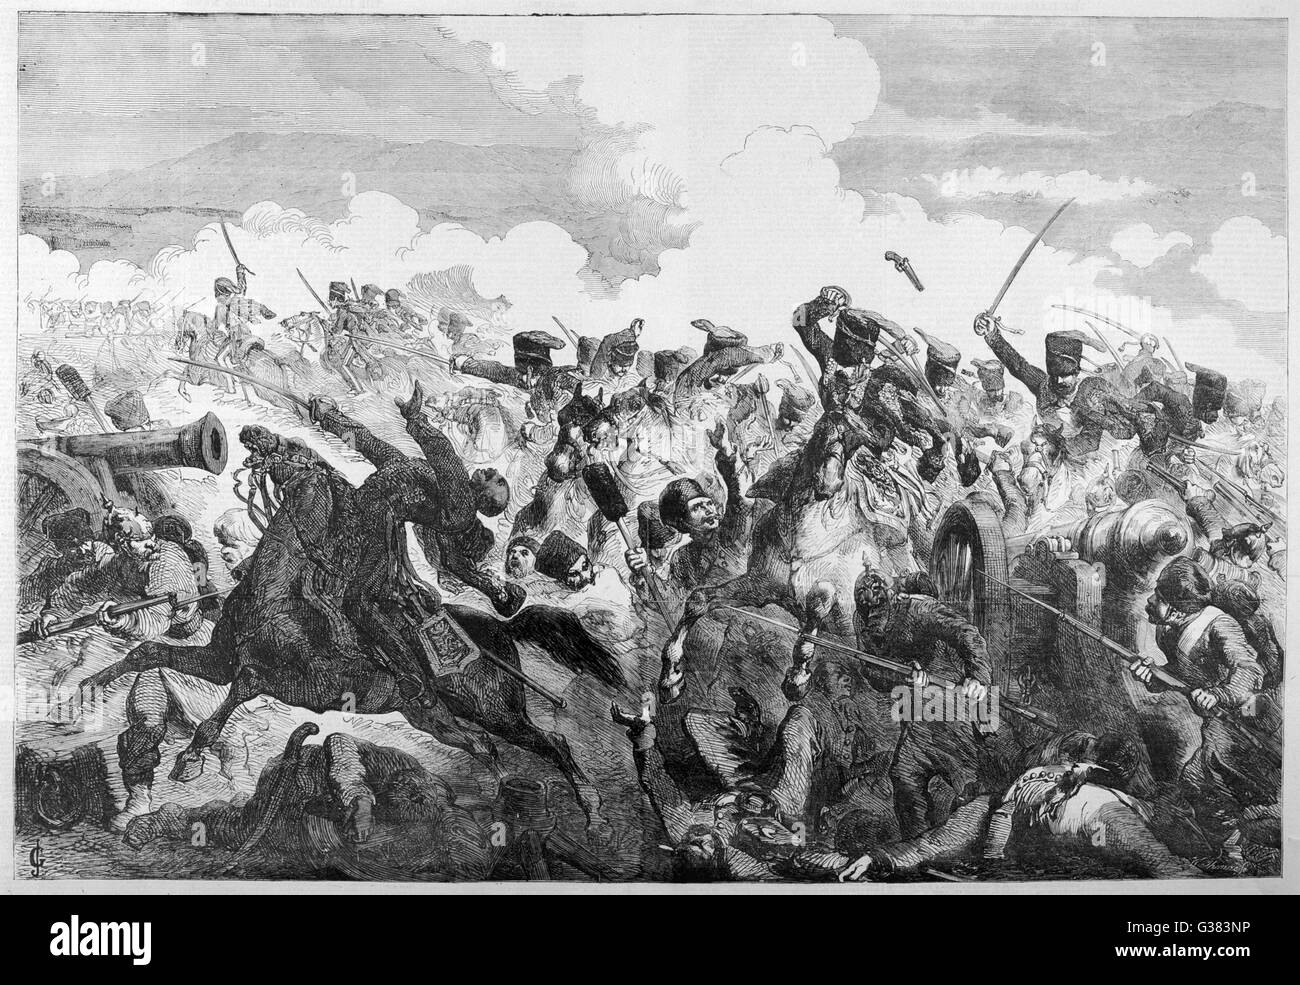 The Charge of the Light  Brigade  - the thick of the fighting        Date: 25 October 1854 - Stock Image